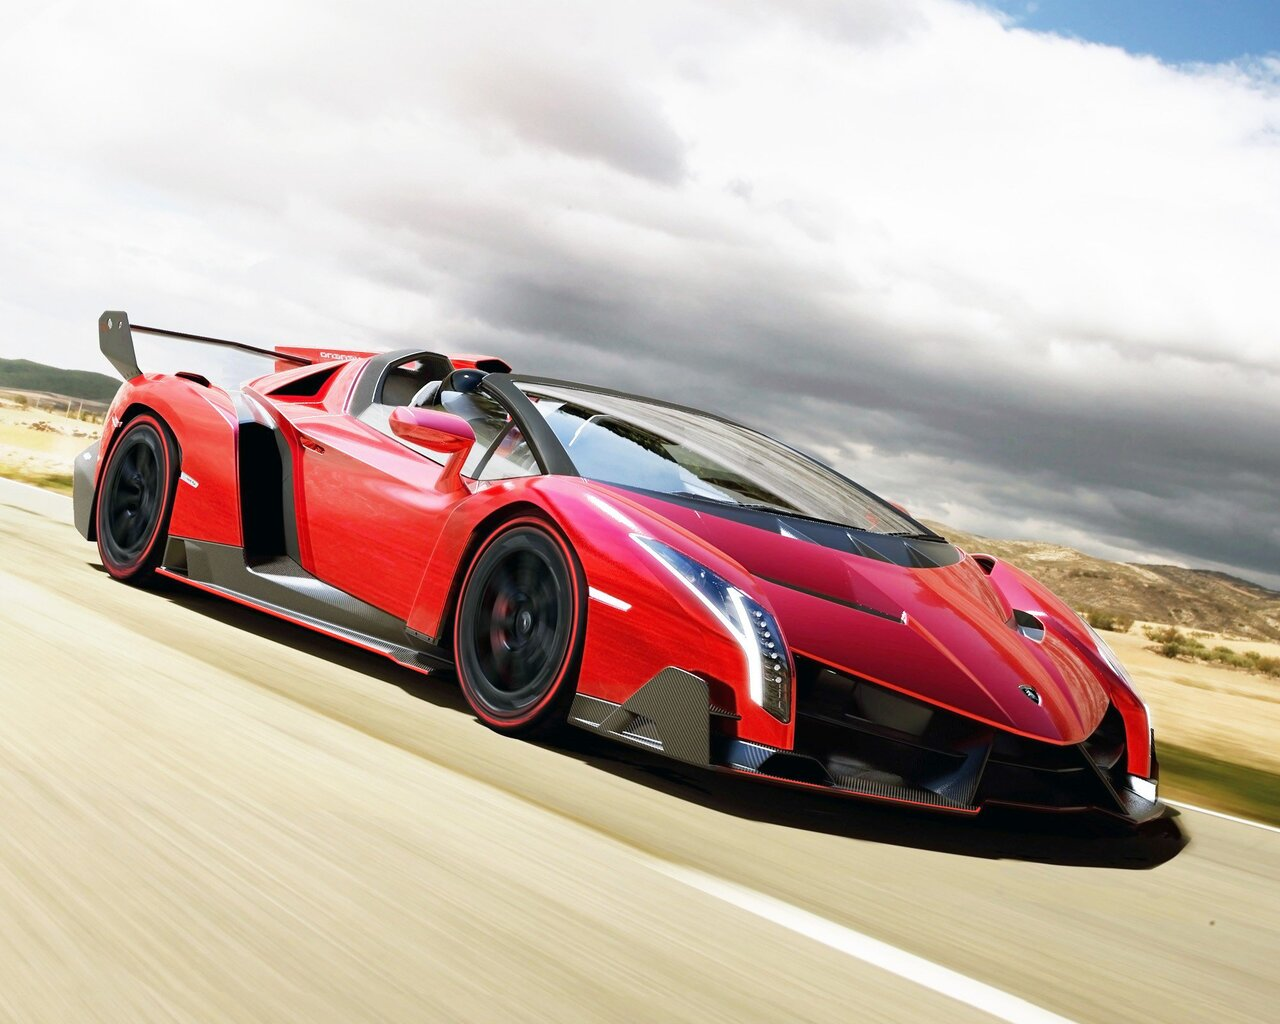 1280x1024 lamborghini veneno roadster 1280x1024 resolution hd 4k